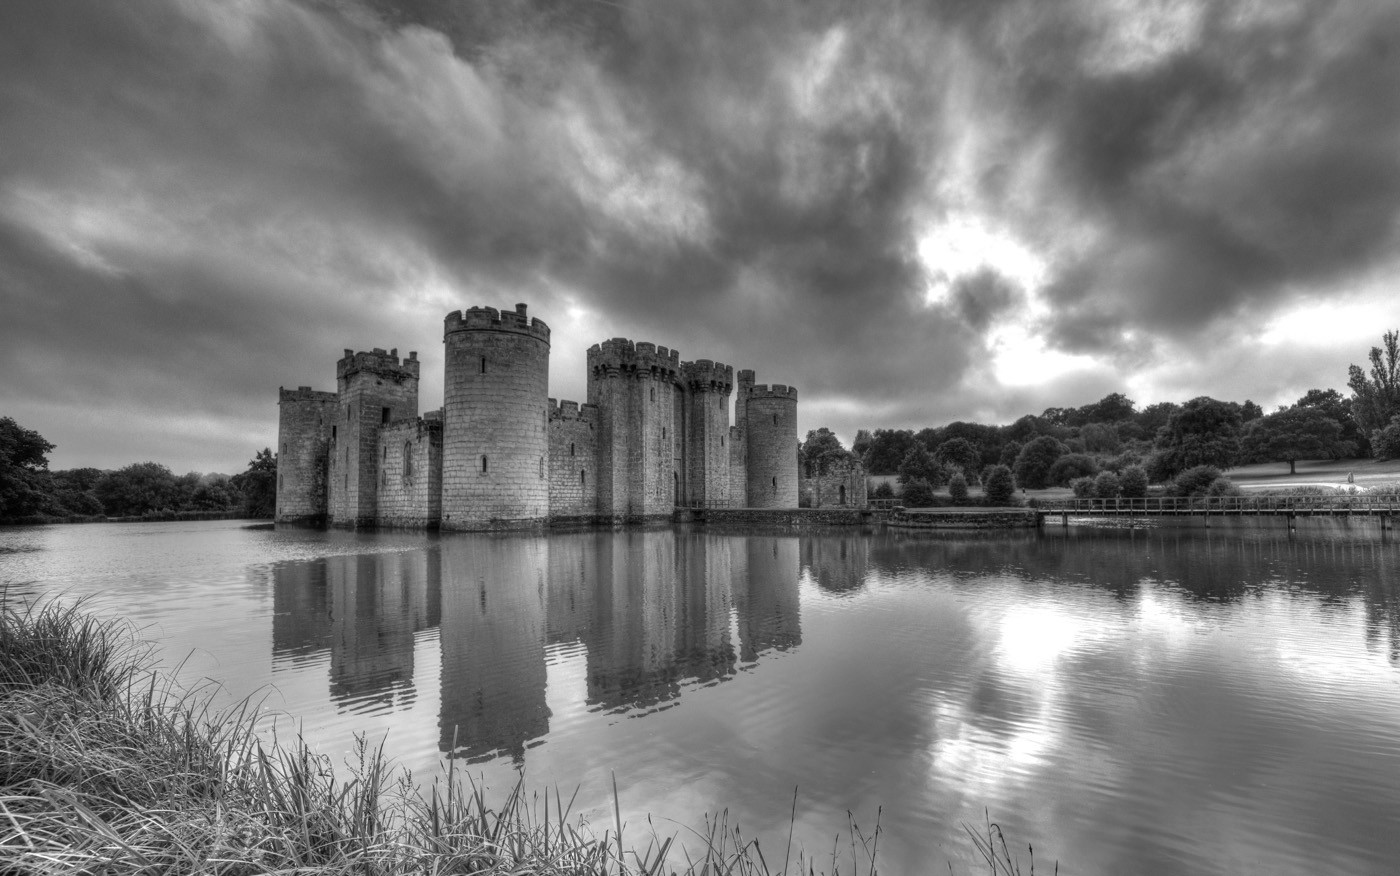 GROUP 1 16 BODIAM by Richard Brown